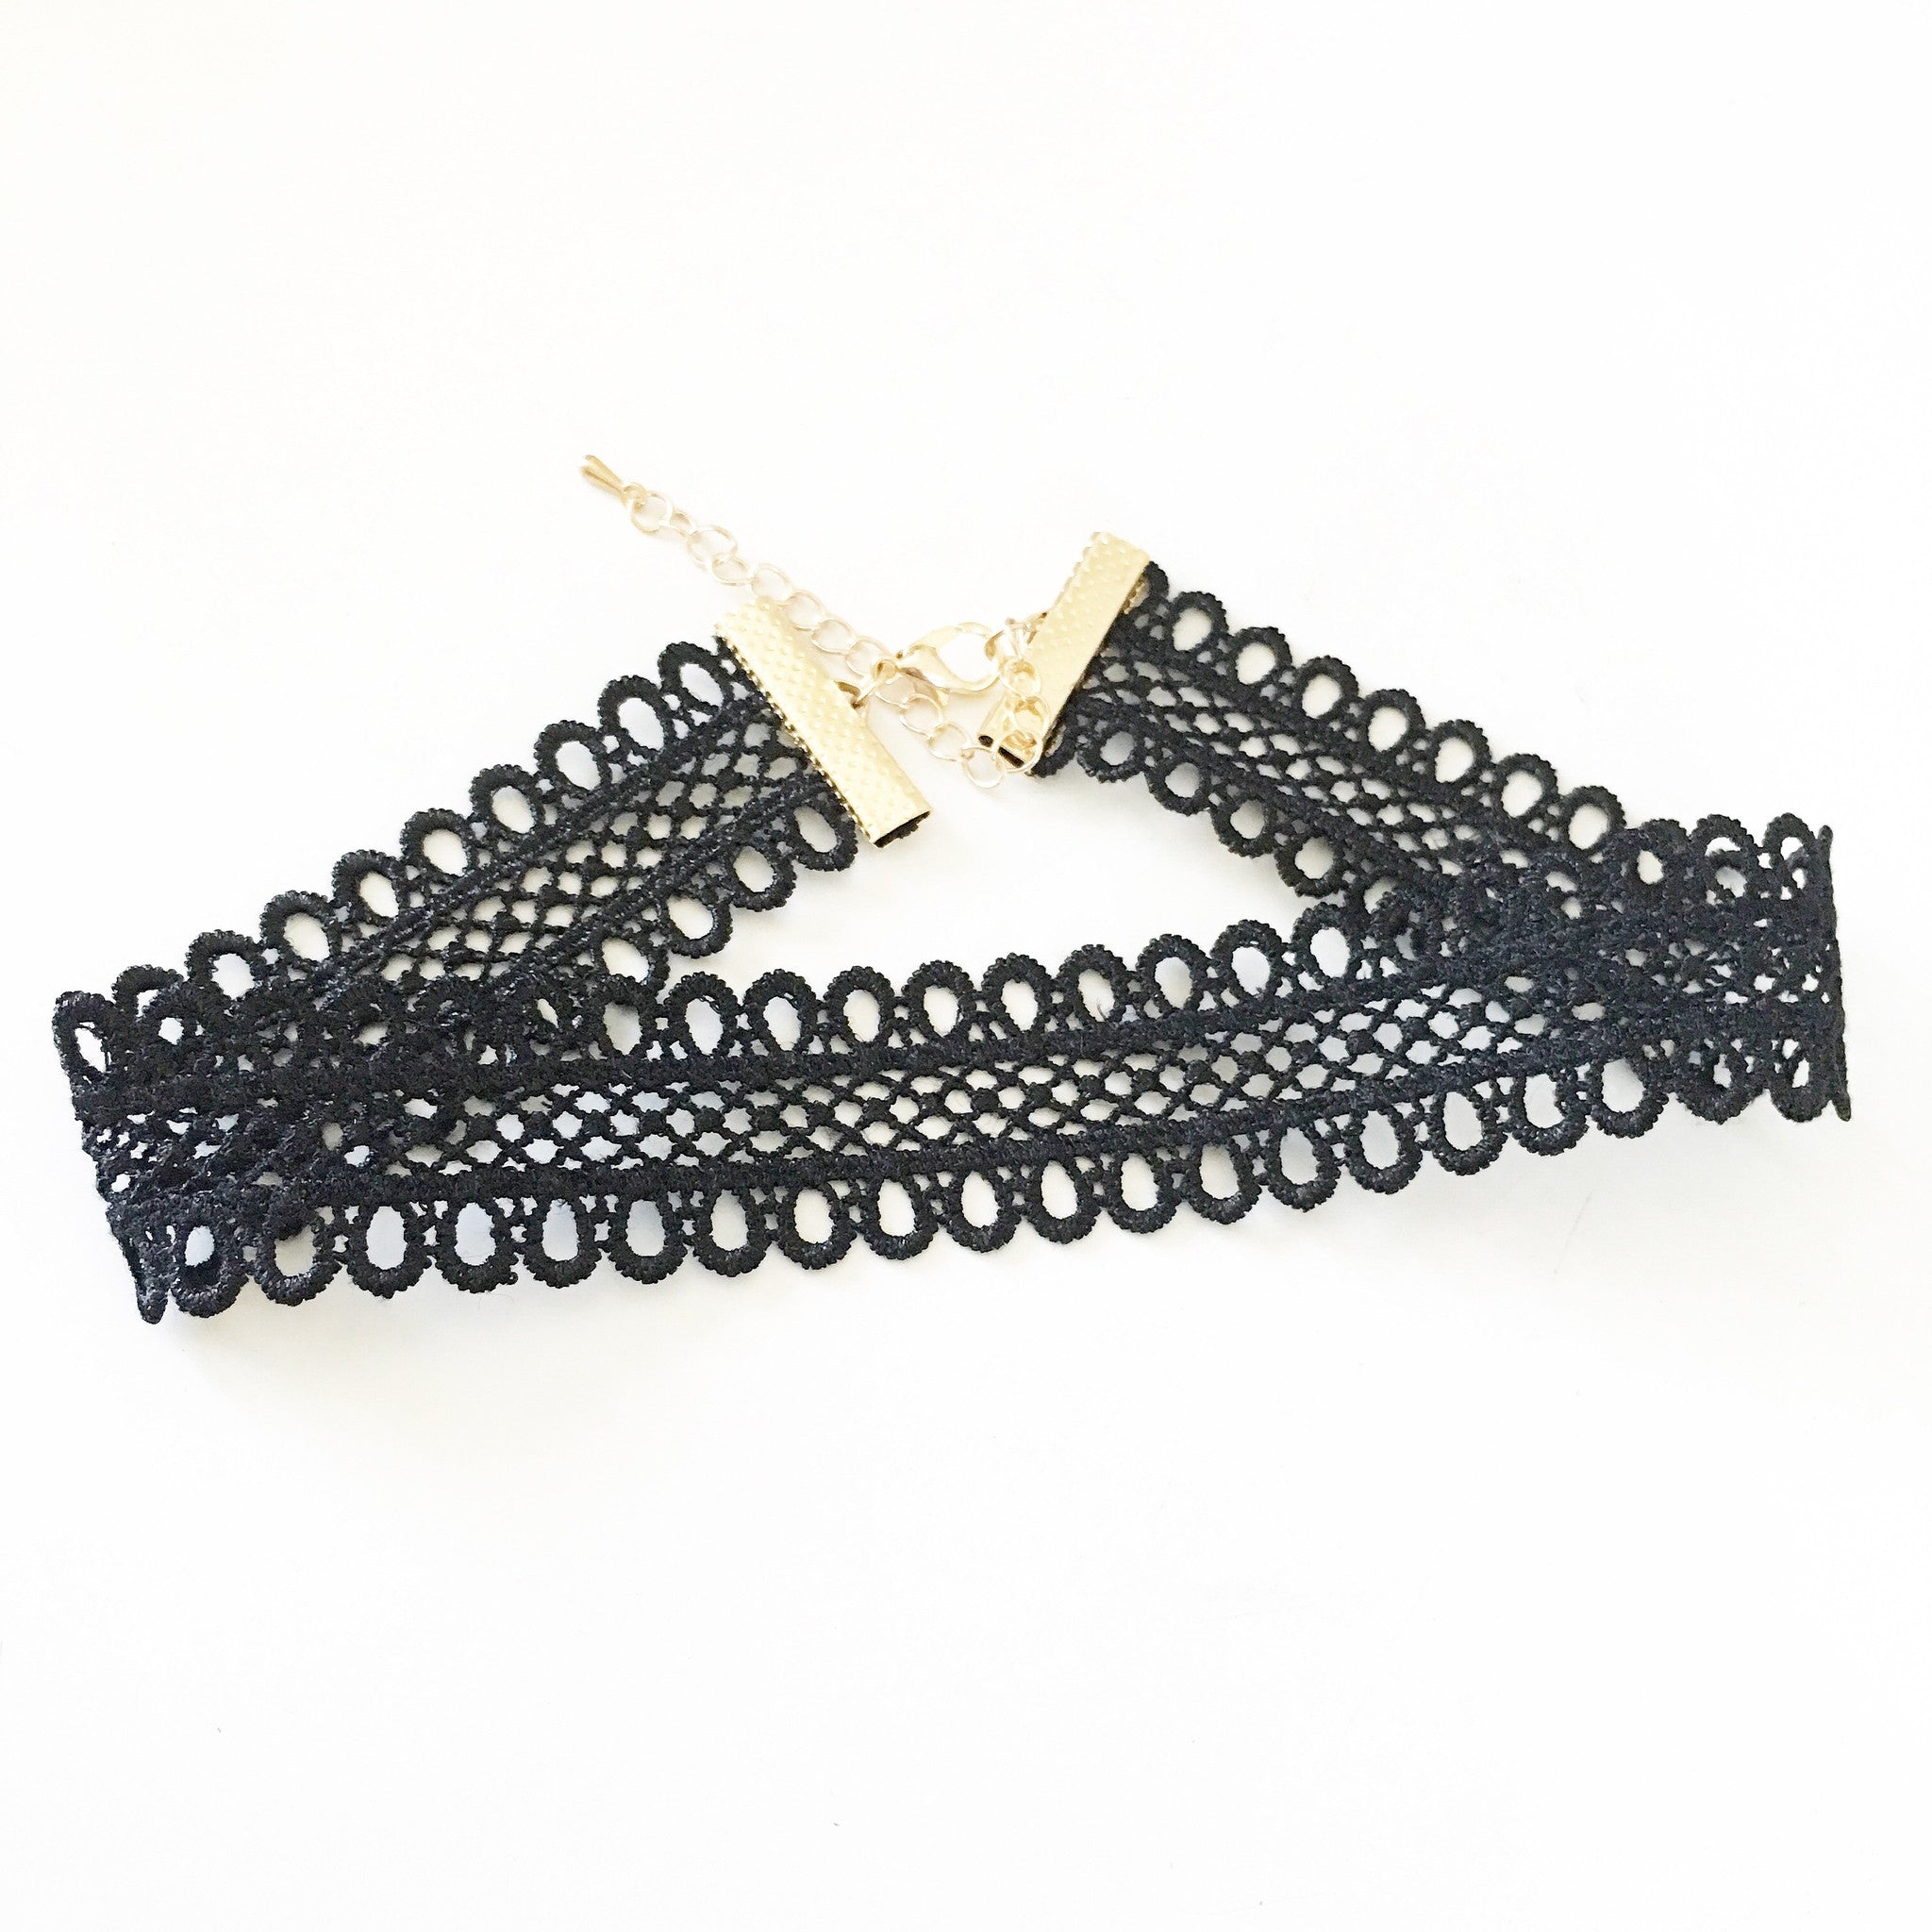 BASIC VENICE LACE - Necklace